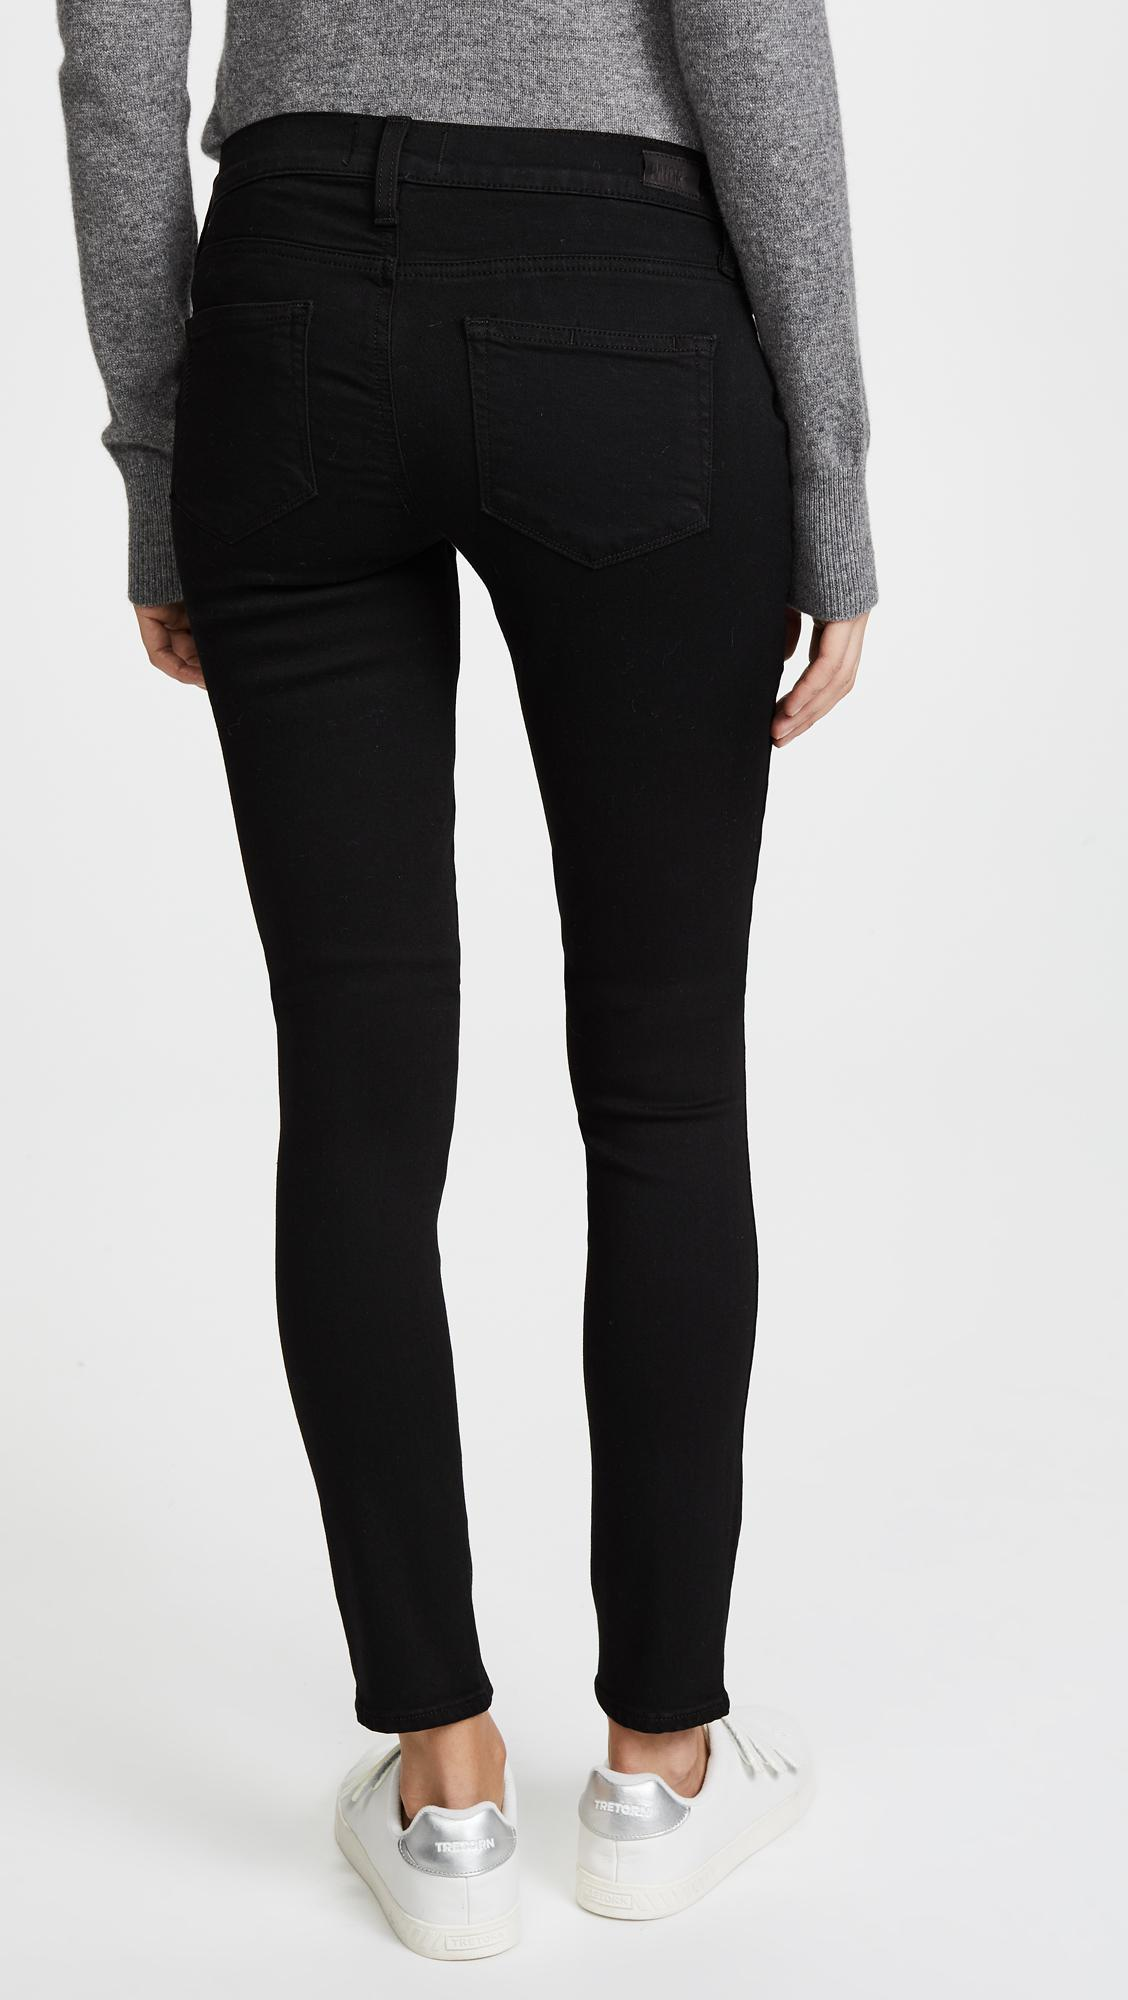 e7cccd6ab9093 PAIGE - Black Transcend Verdugo Ultra Skinny Maternity Jeans - Lyst. View  fullscreen